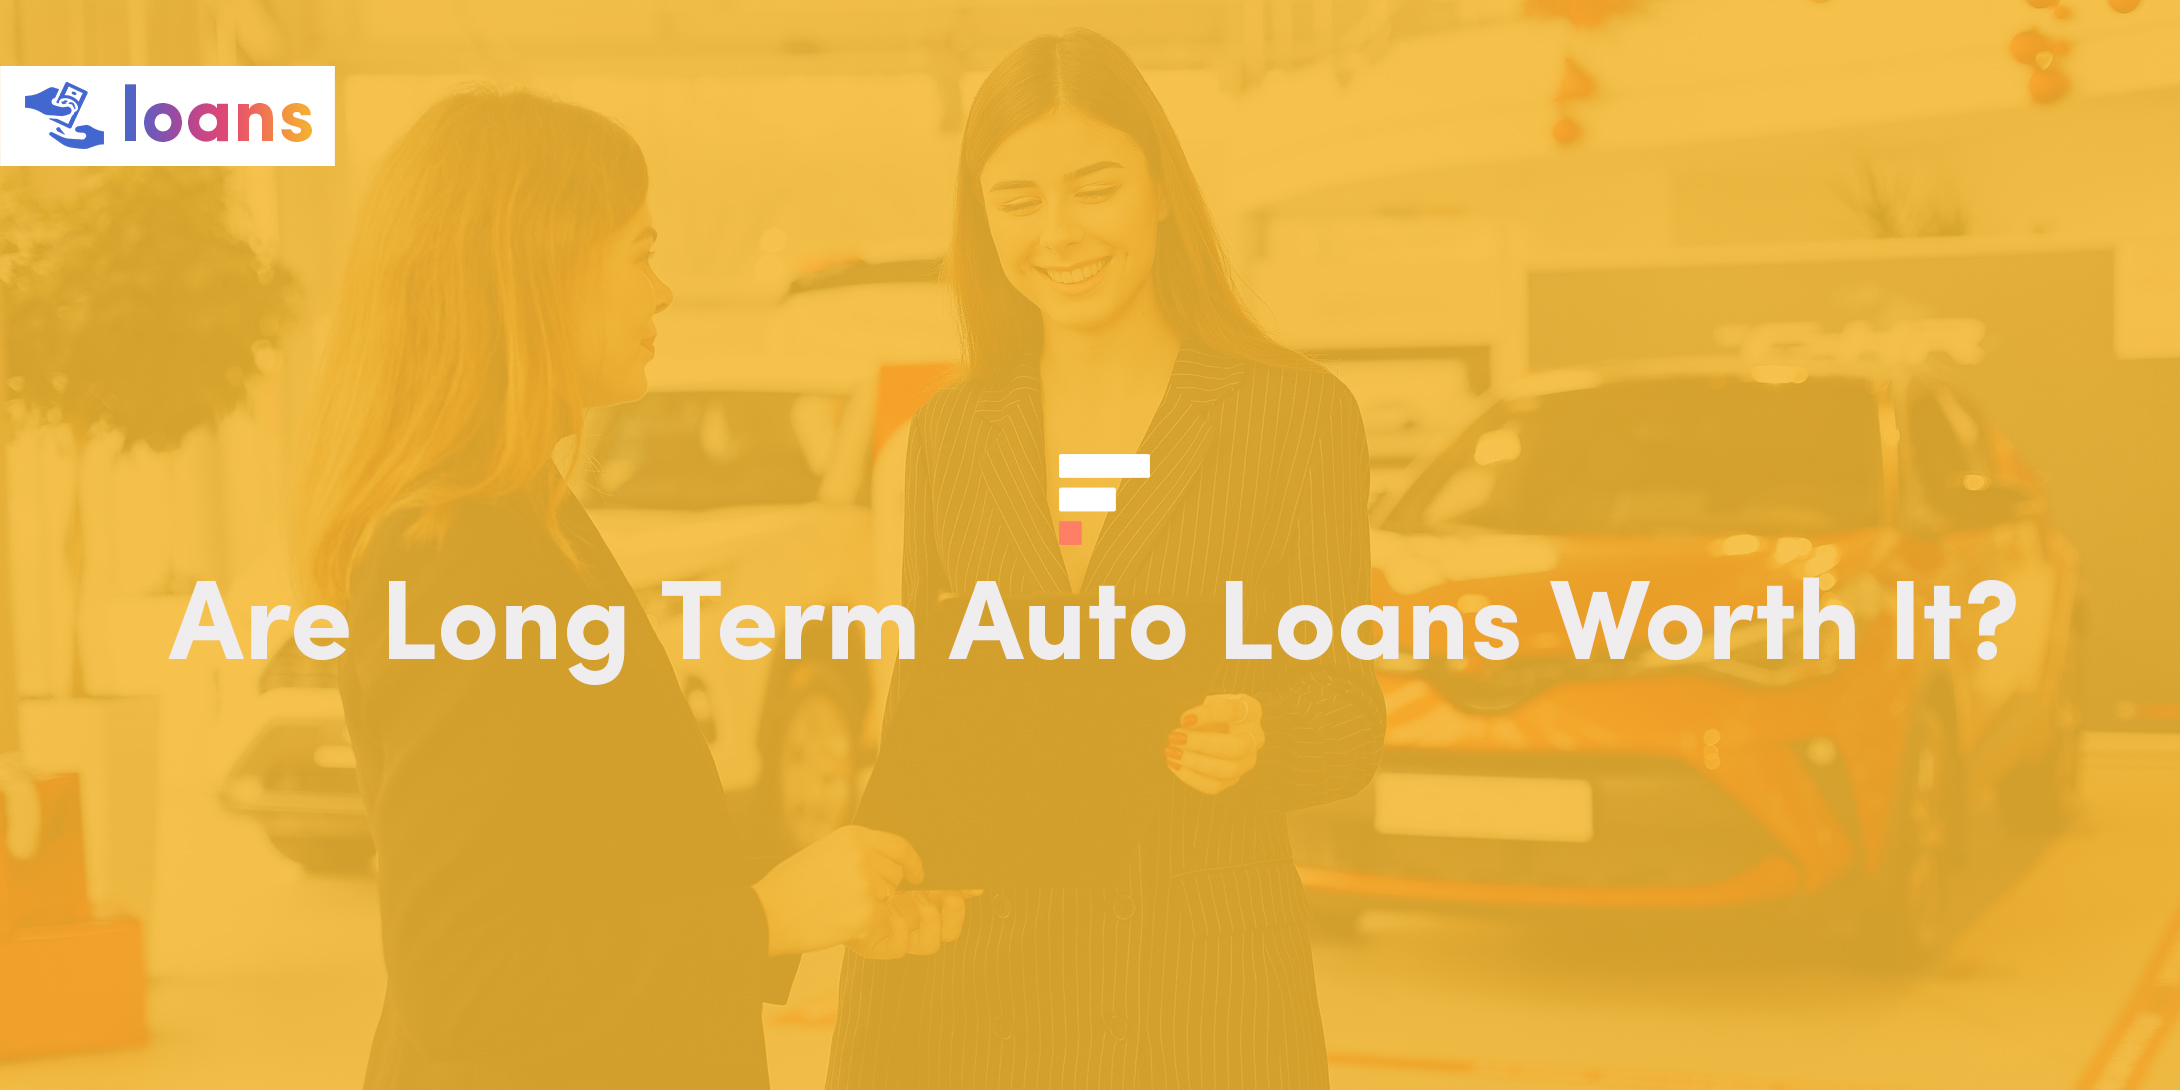 Are Long Term Auto Loans Worth It?